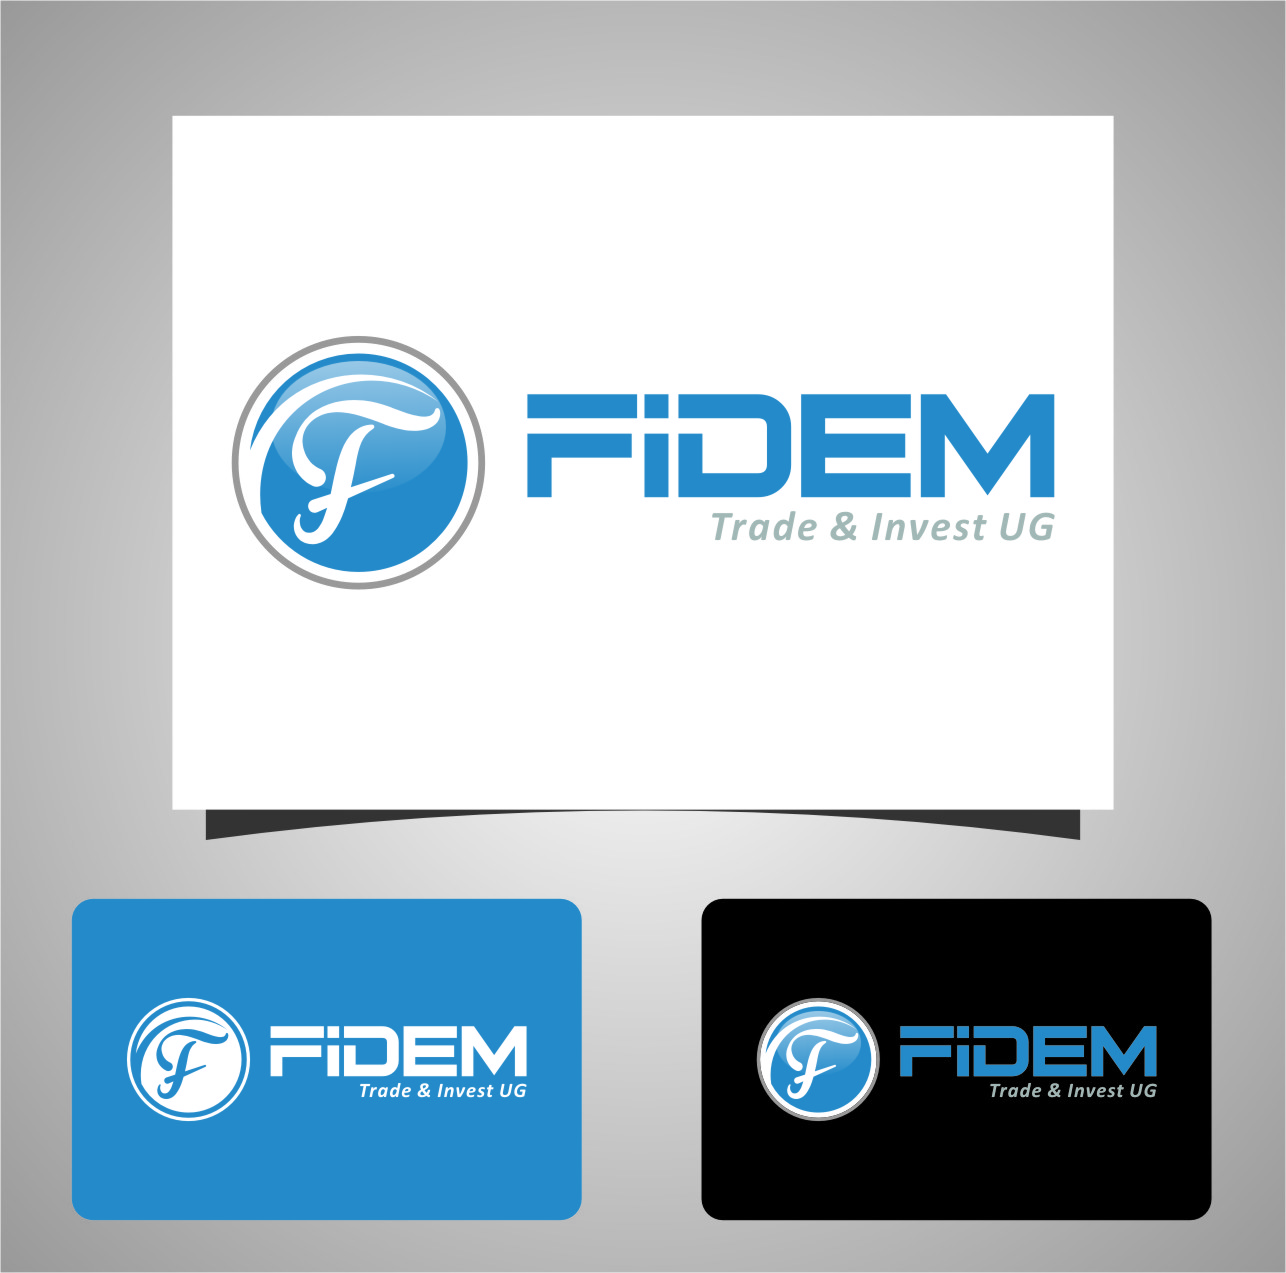 Logo Design by Ngepet_art - Entry No. 687 in the Logo Design Contest Professional Logo Design for FIDEM Trade & Invest UG.